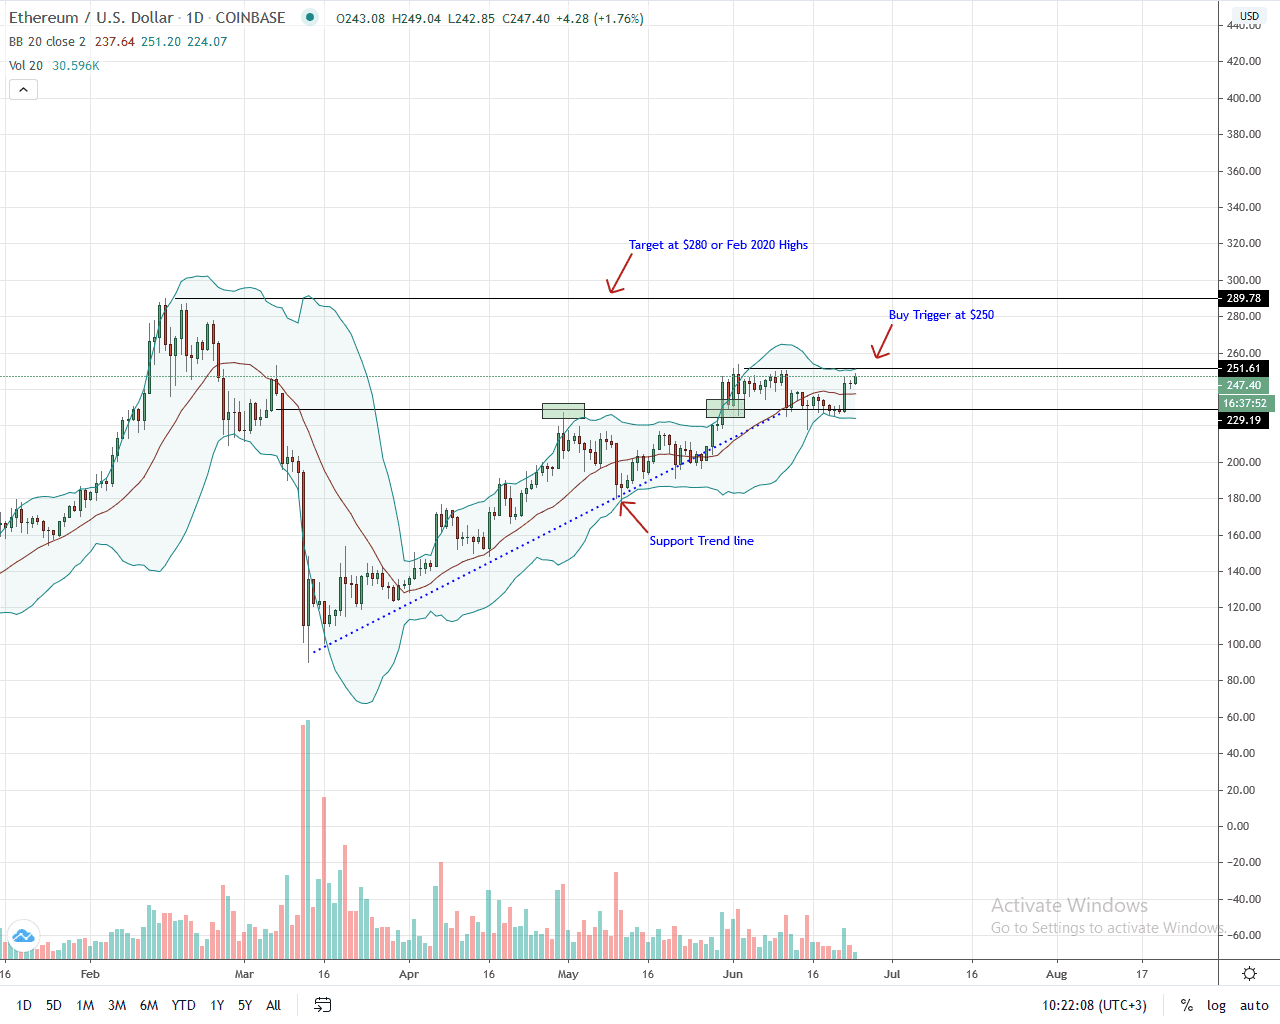 Ethereum Daily Chart for June 24, 2020